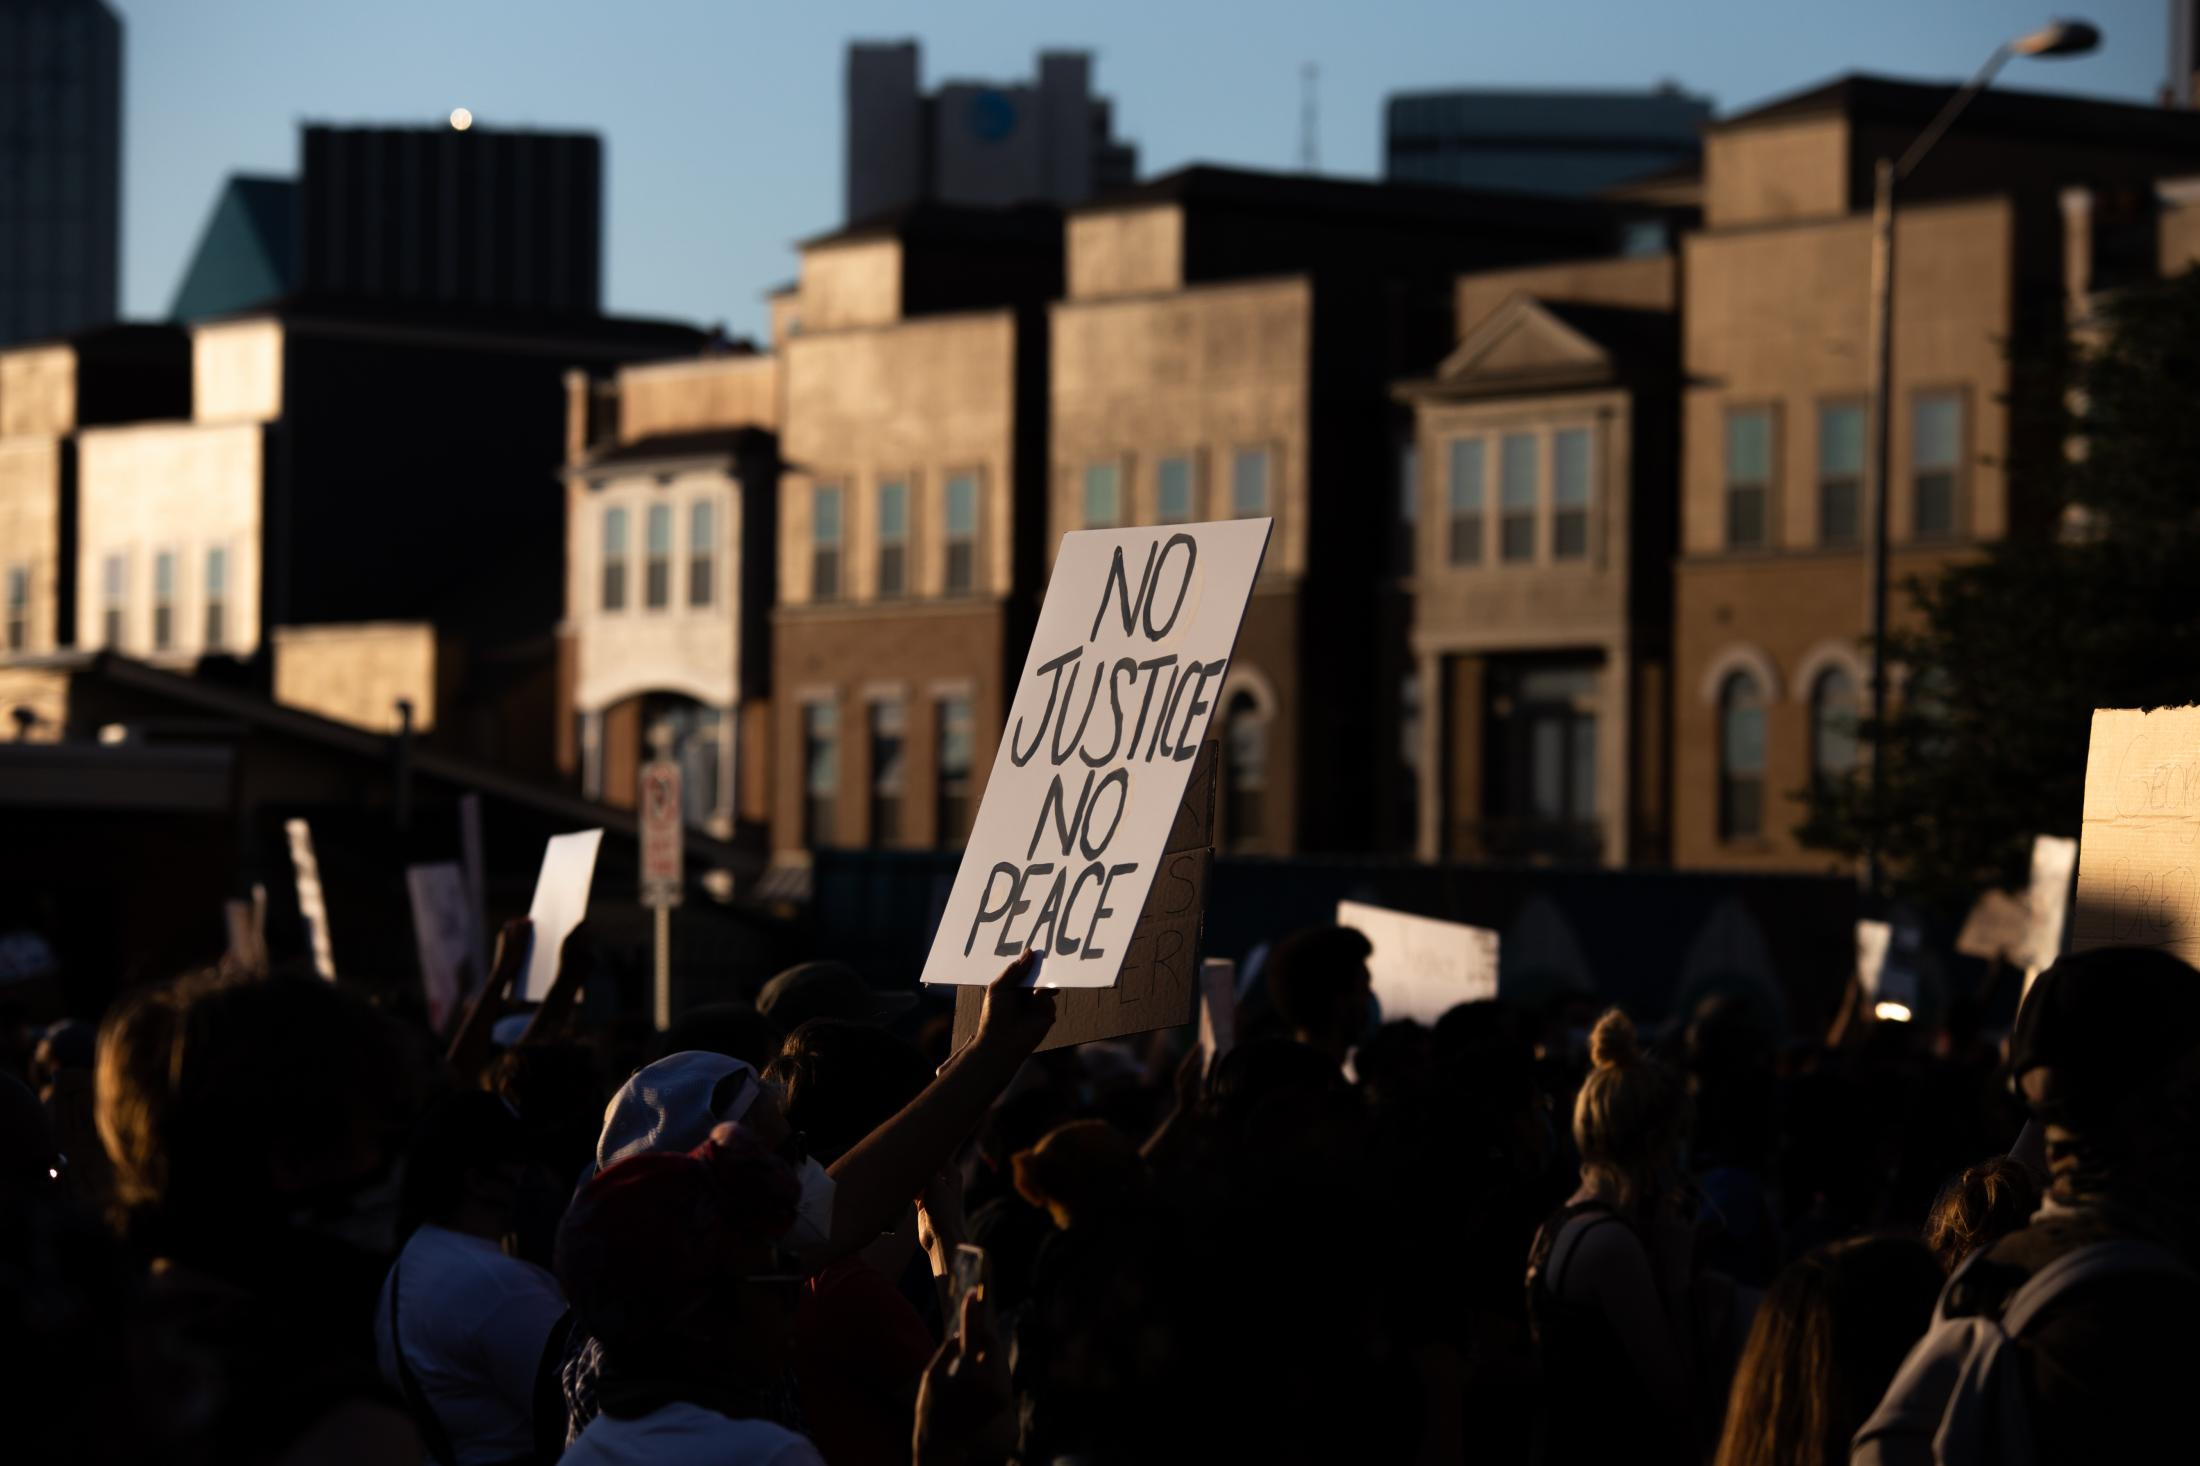 """A sign that reads """"No Justice, No Peace"""" is held up high during the march of police killings. No justice, No peace, has been used from many demonstrations to express that there will be no peace on the streets if there is no justice for Black Americans' murder."""